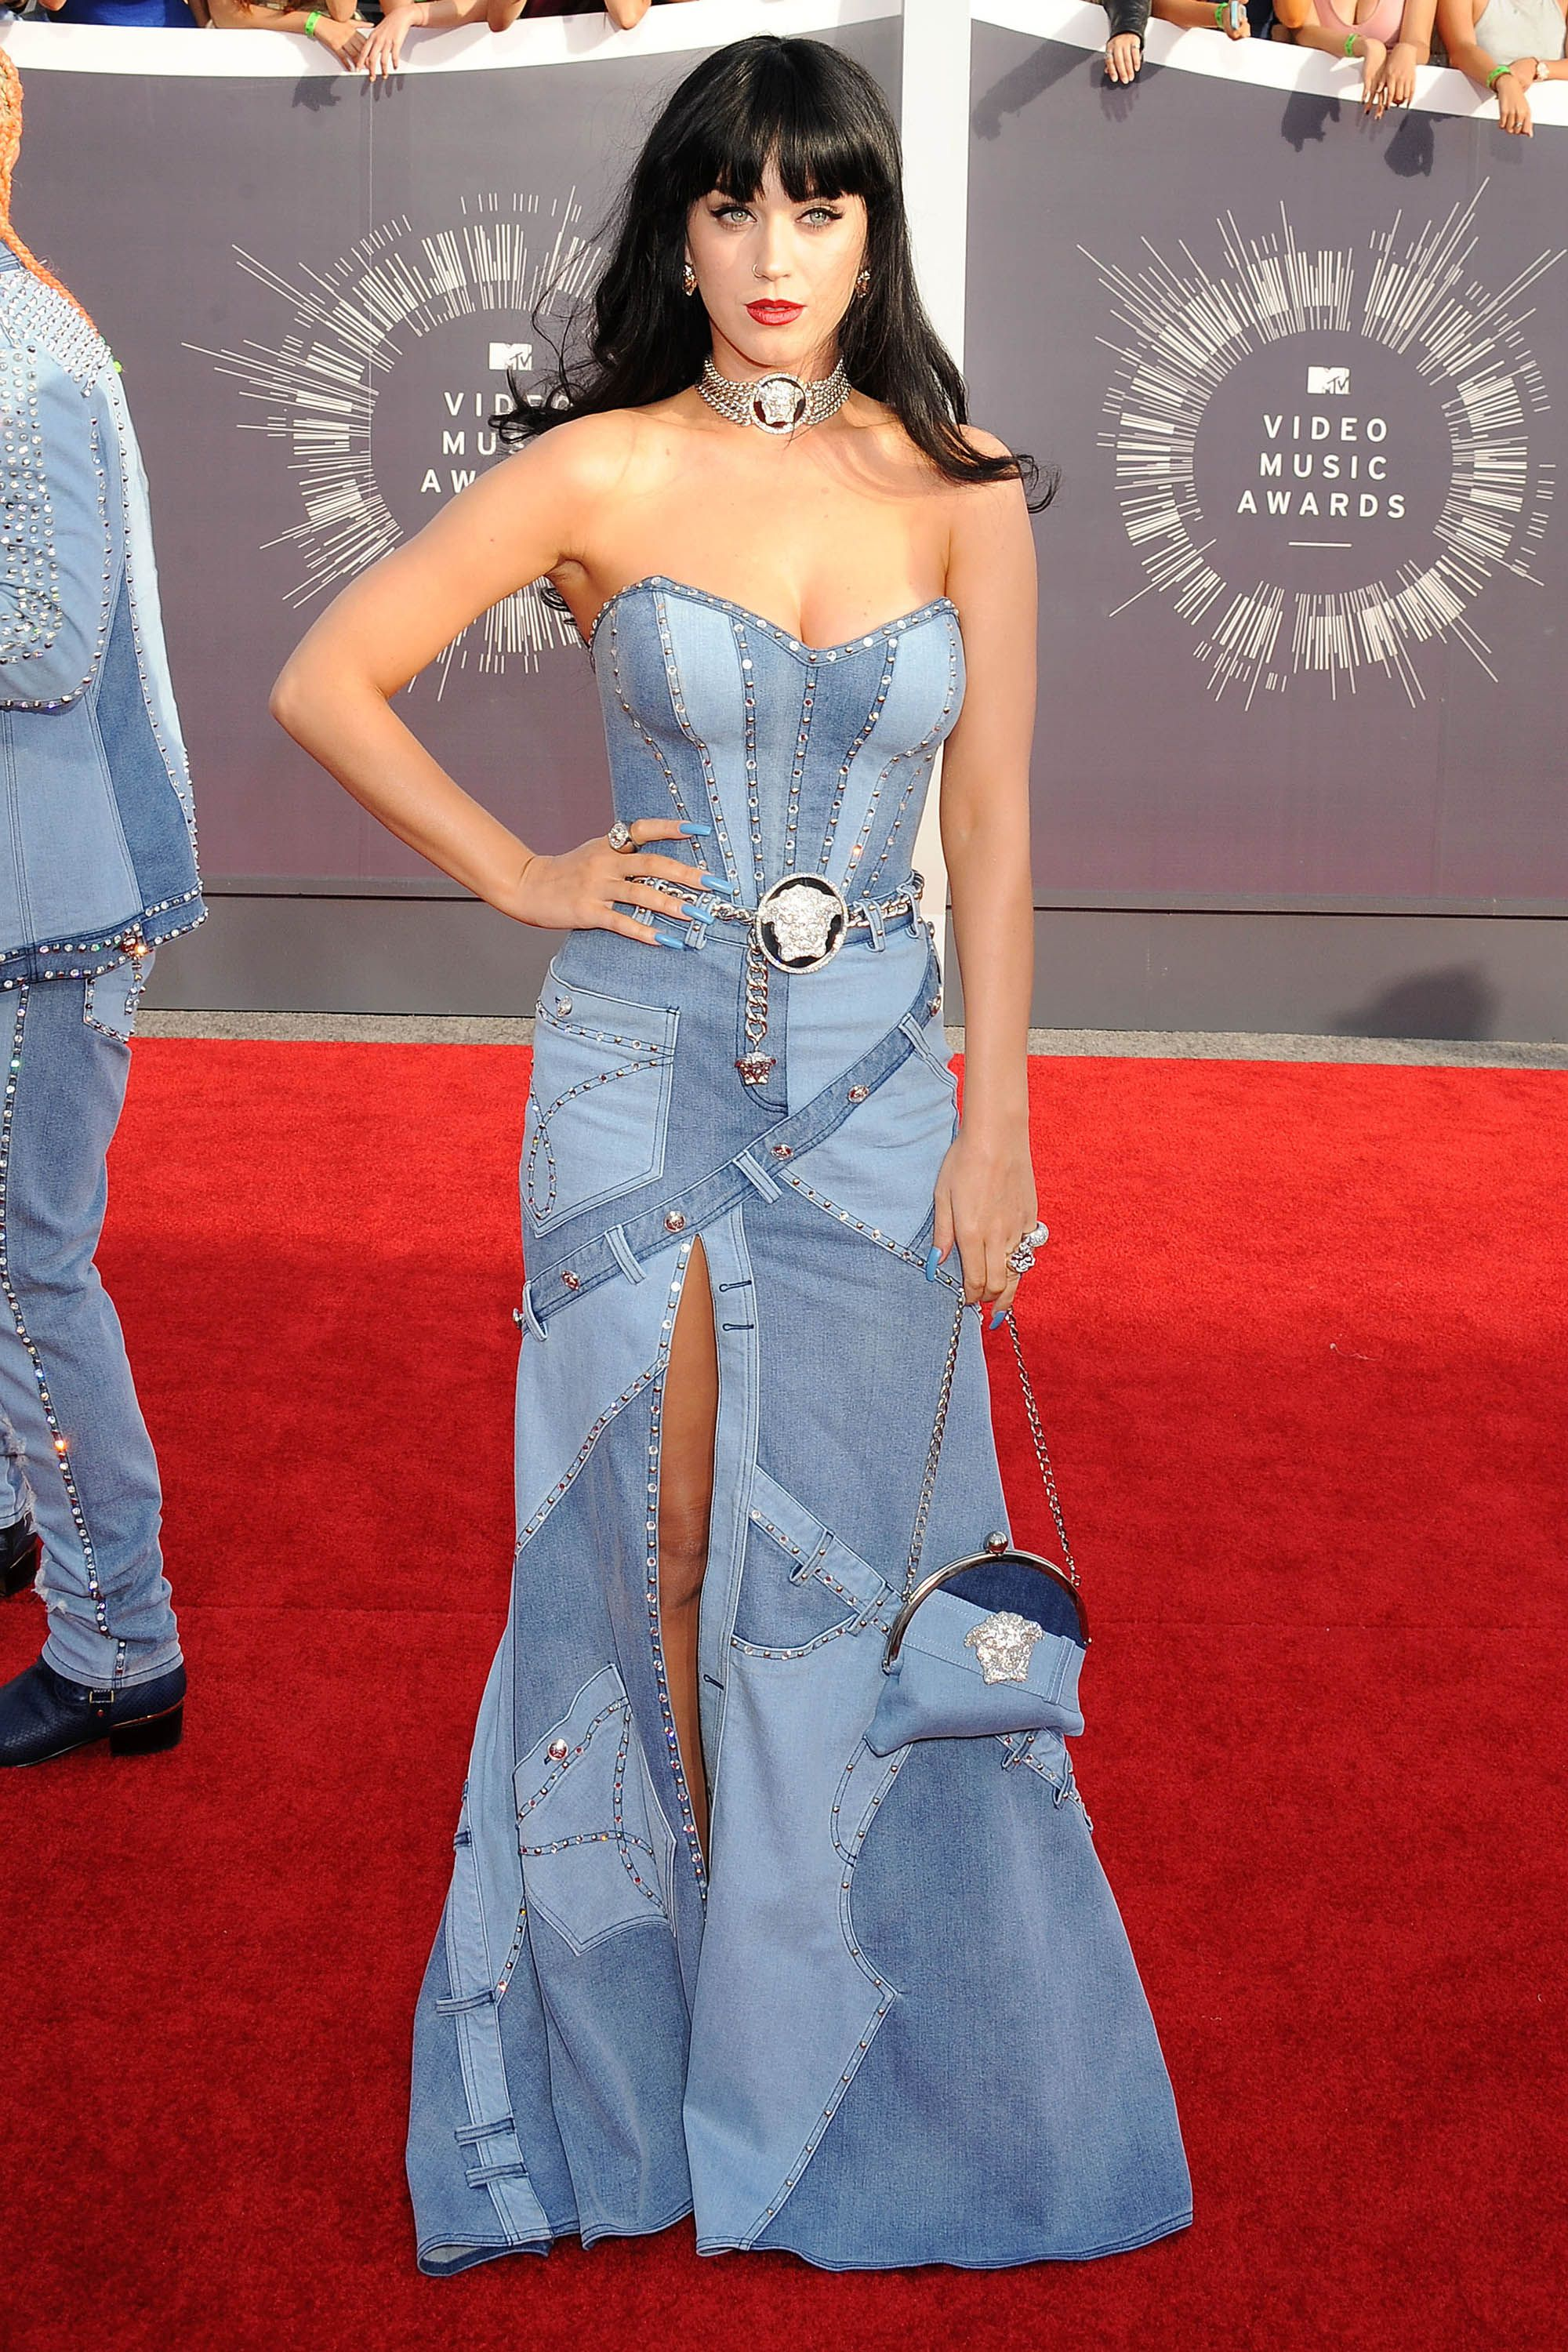 Vmas Fashion Moments We Ll Never Forget Iconic Dresses Katy Perry Pictures Fashion